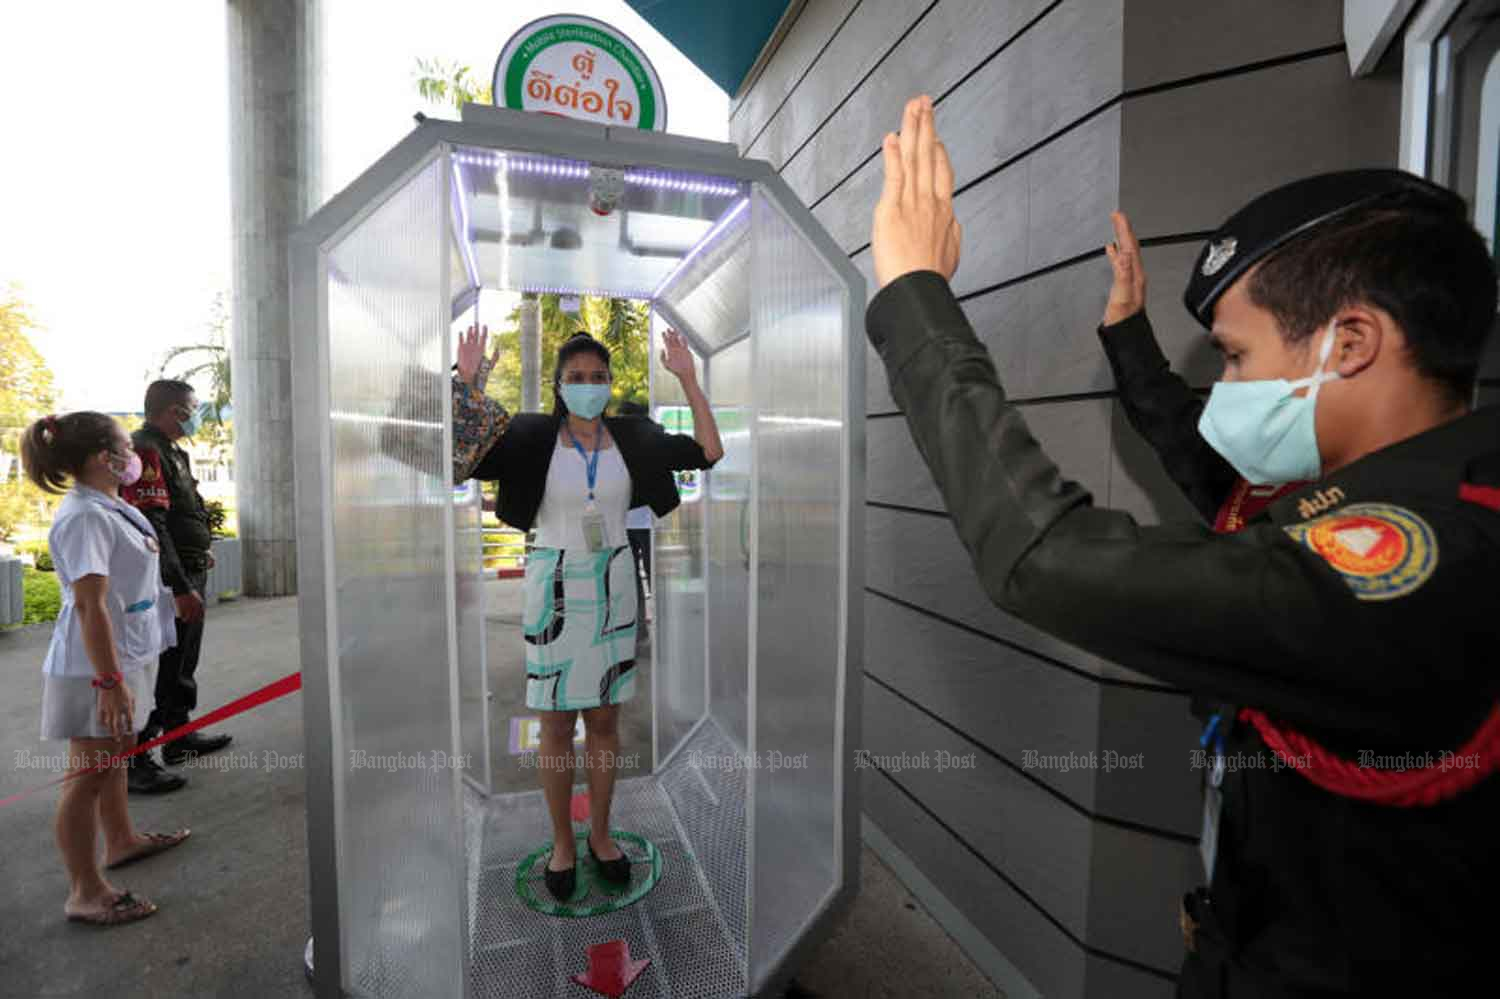 A security official shows a woman how to use a cubicle equipped with disinfectant spray for people entering Srithanya Hospital in Nonthaburi province. The cubicle, donated by a private business, is for use on people who have gone through a thermal scan. (Photo: Chanat Katanyu)